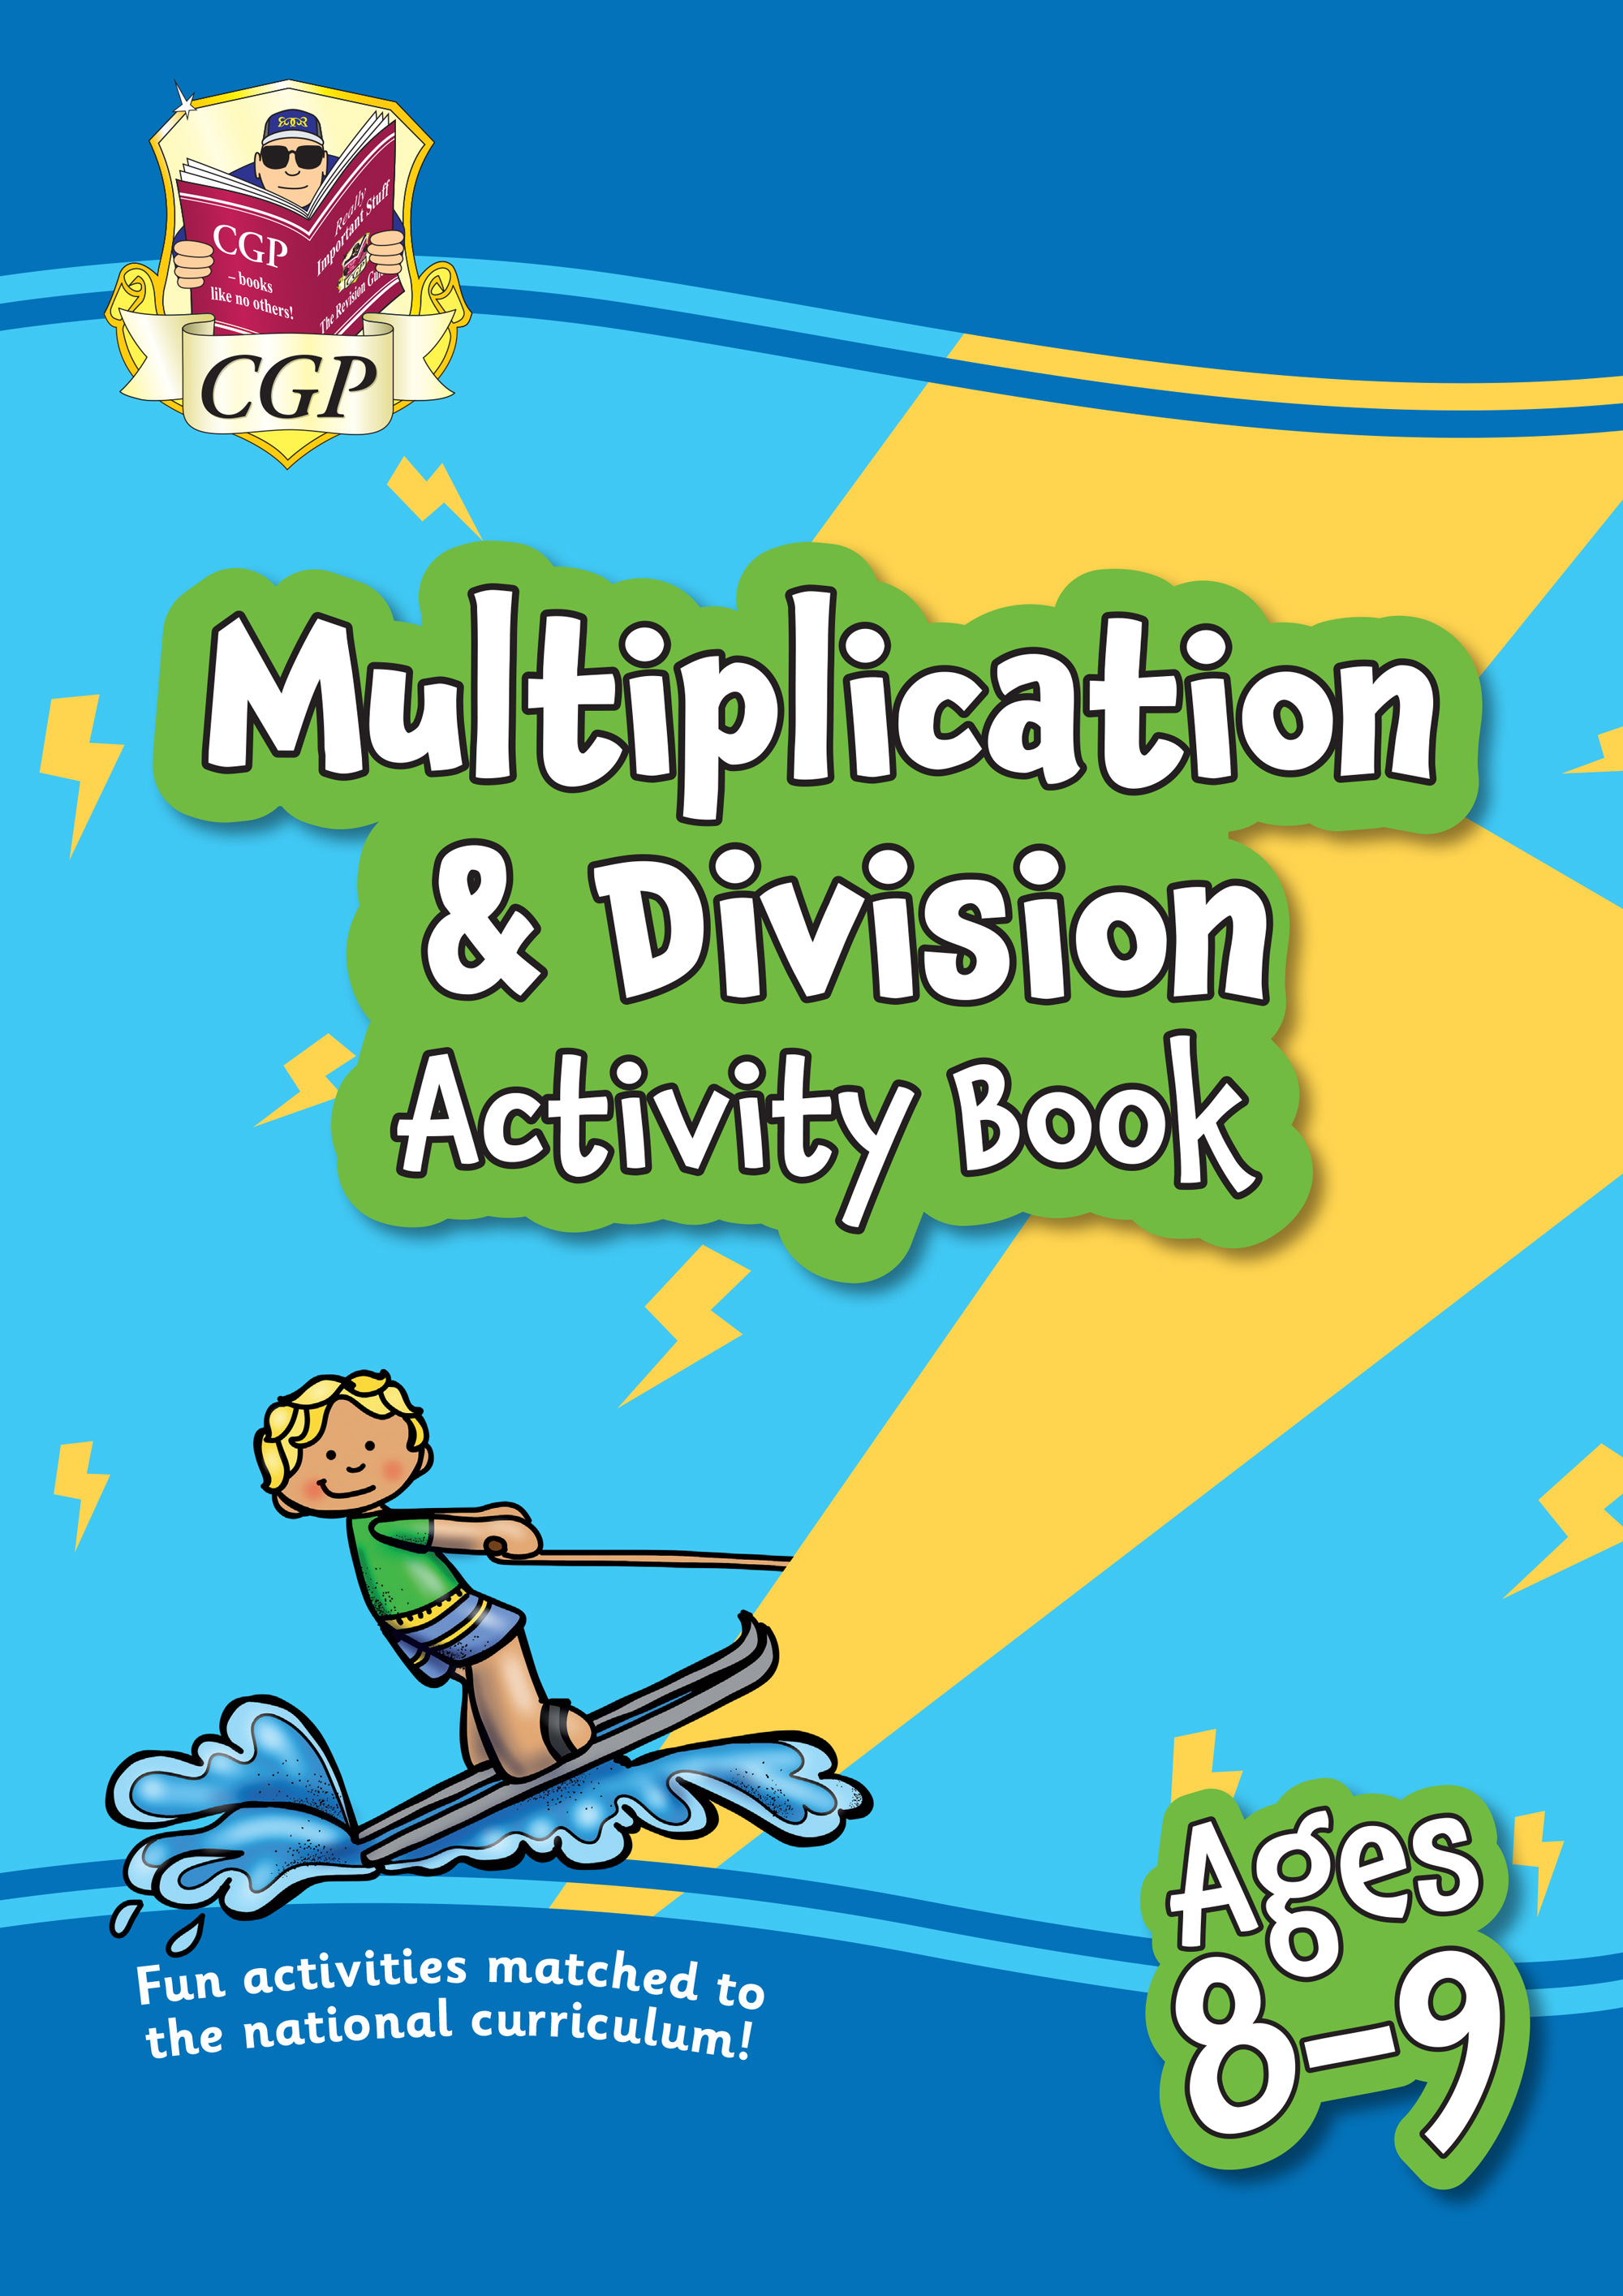 MPFMD4Q21 - New Multiplication & Division Activity Book for Ages 8-9: Perfect for Catch-Up and Home